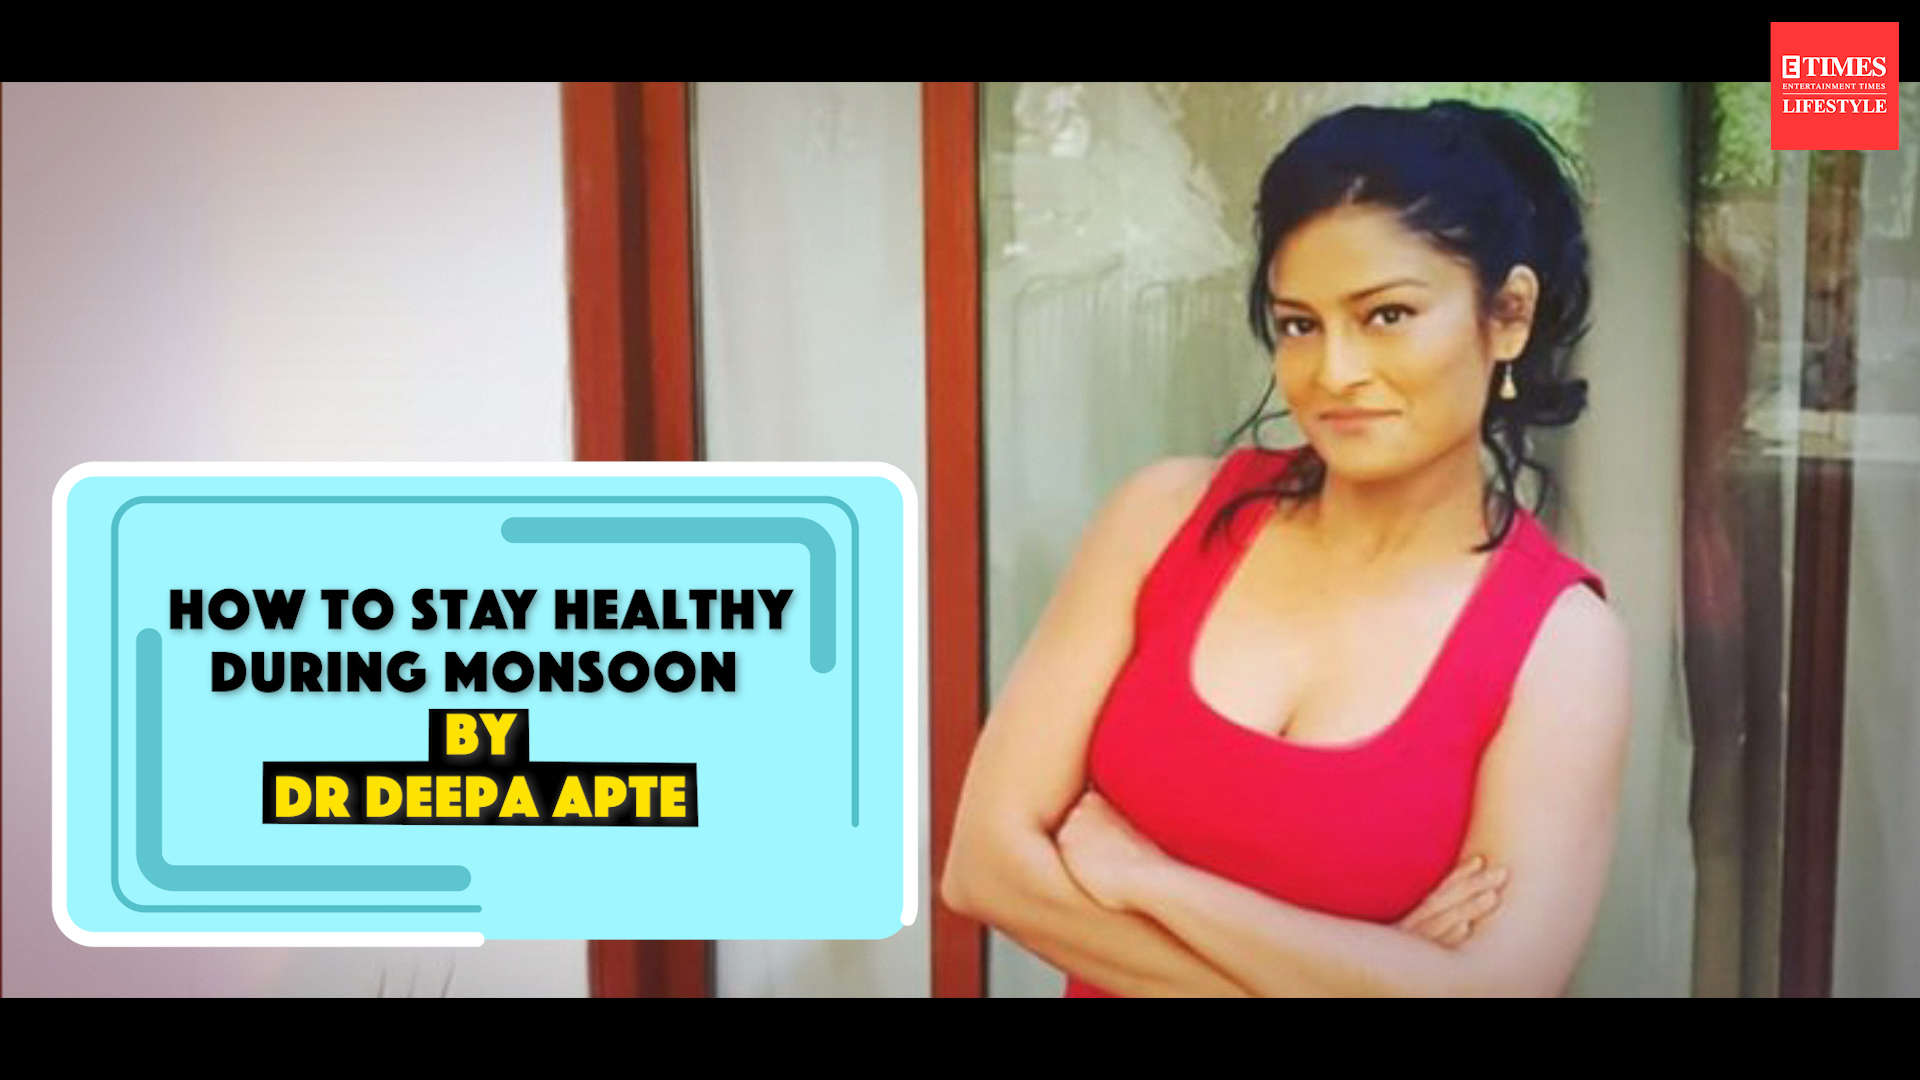 how-to-stay-healthy-during-monsoon-by-dr-deep-apte